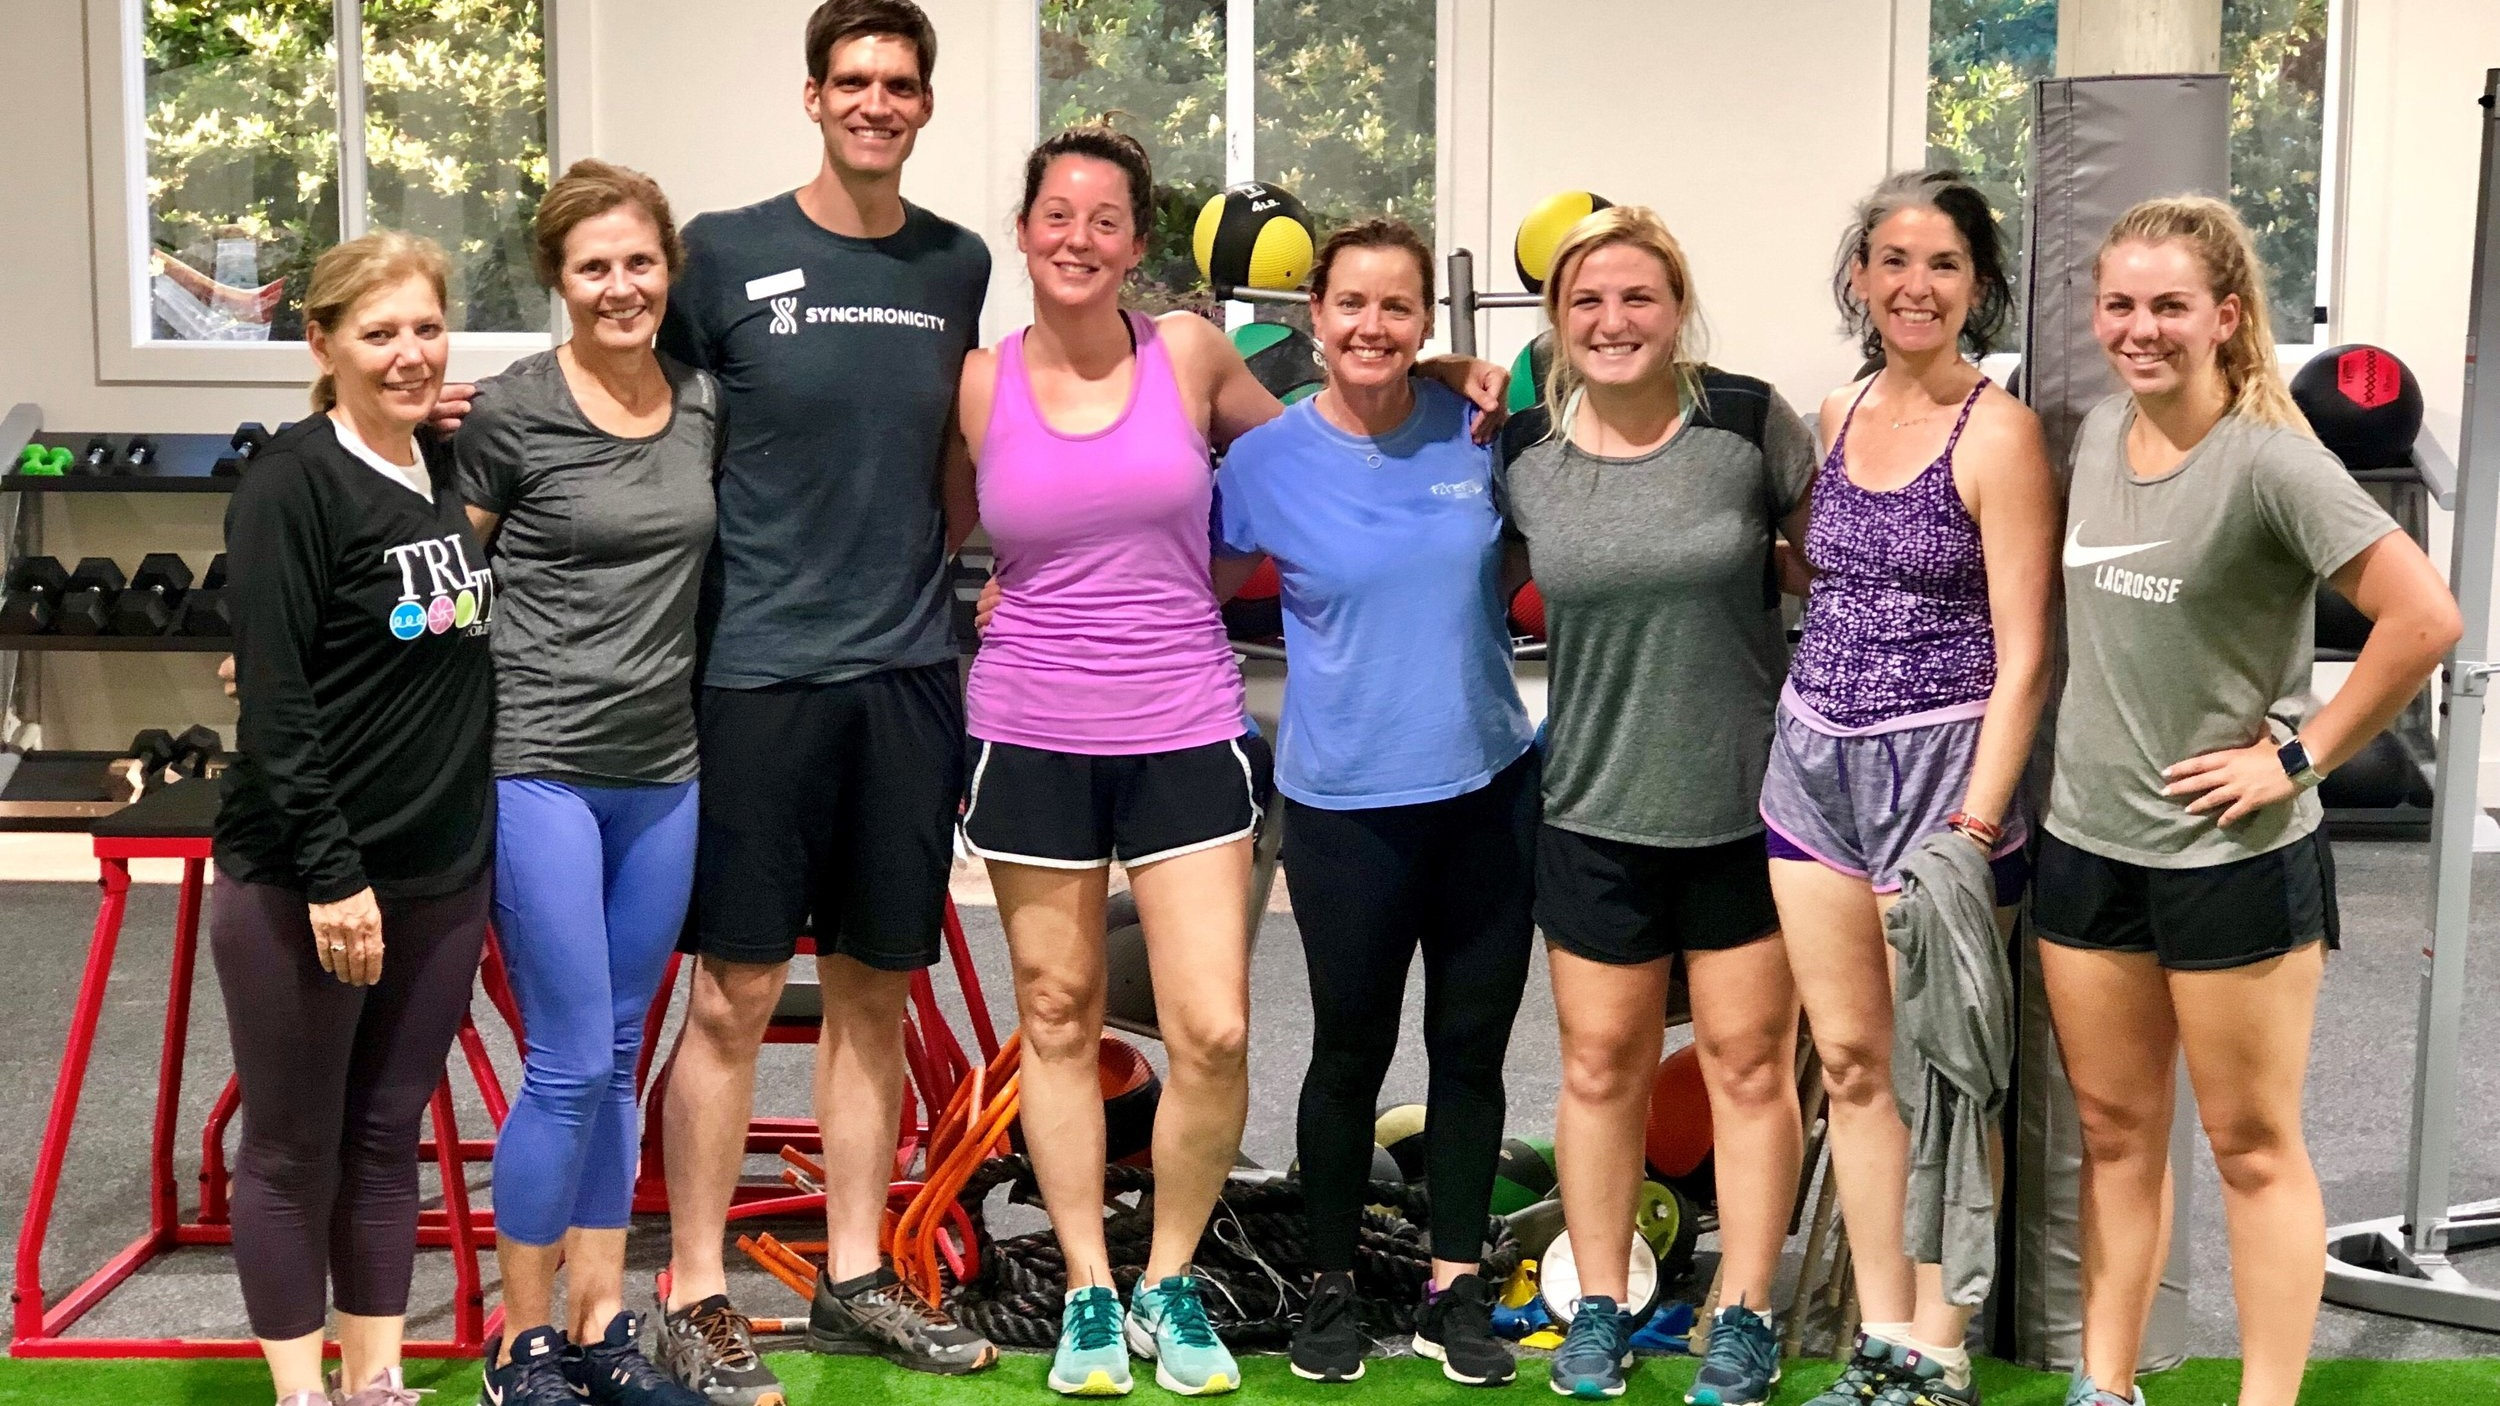 conect+and+sweat+5.14.19.jpg